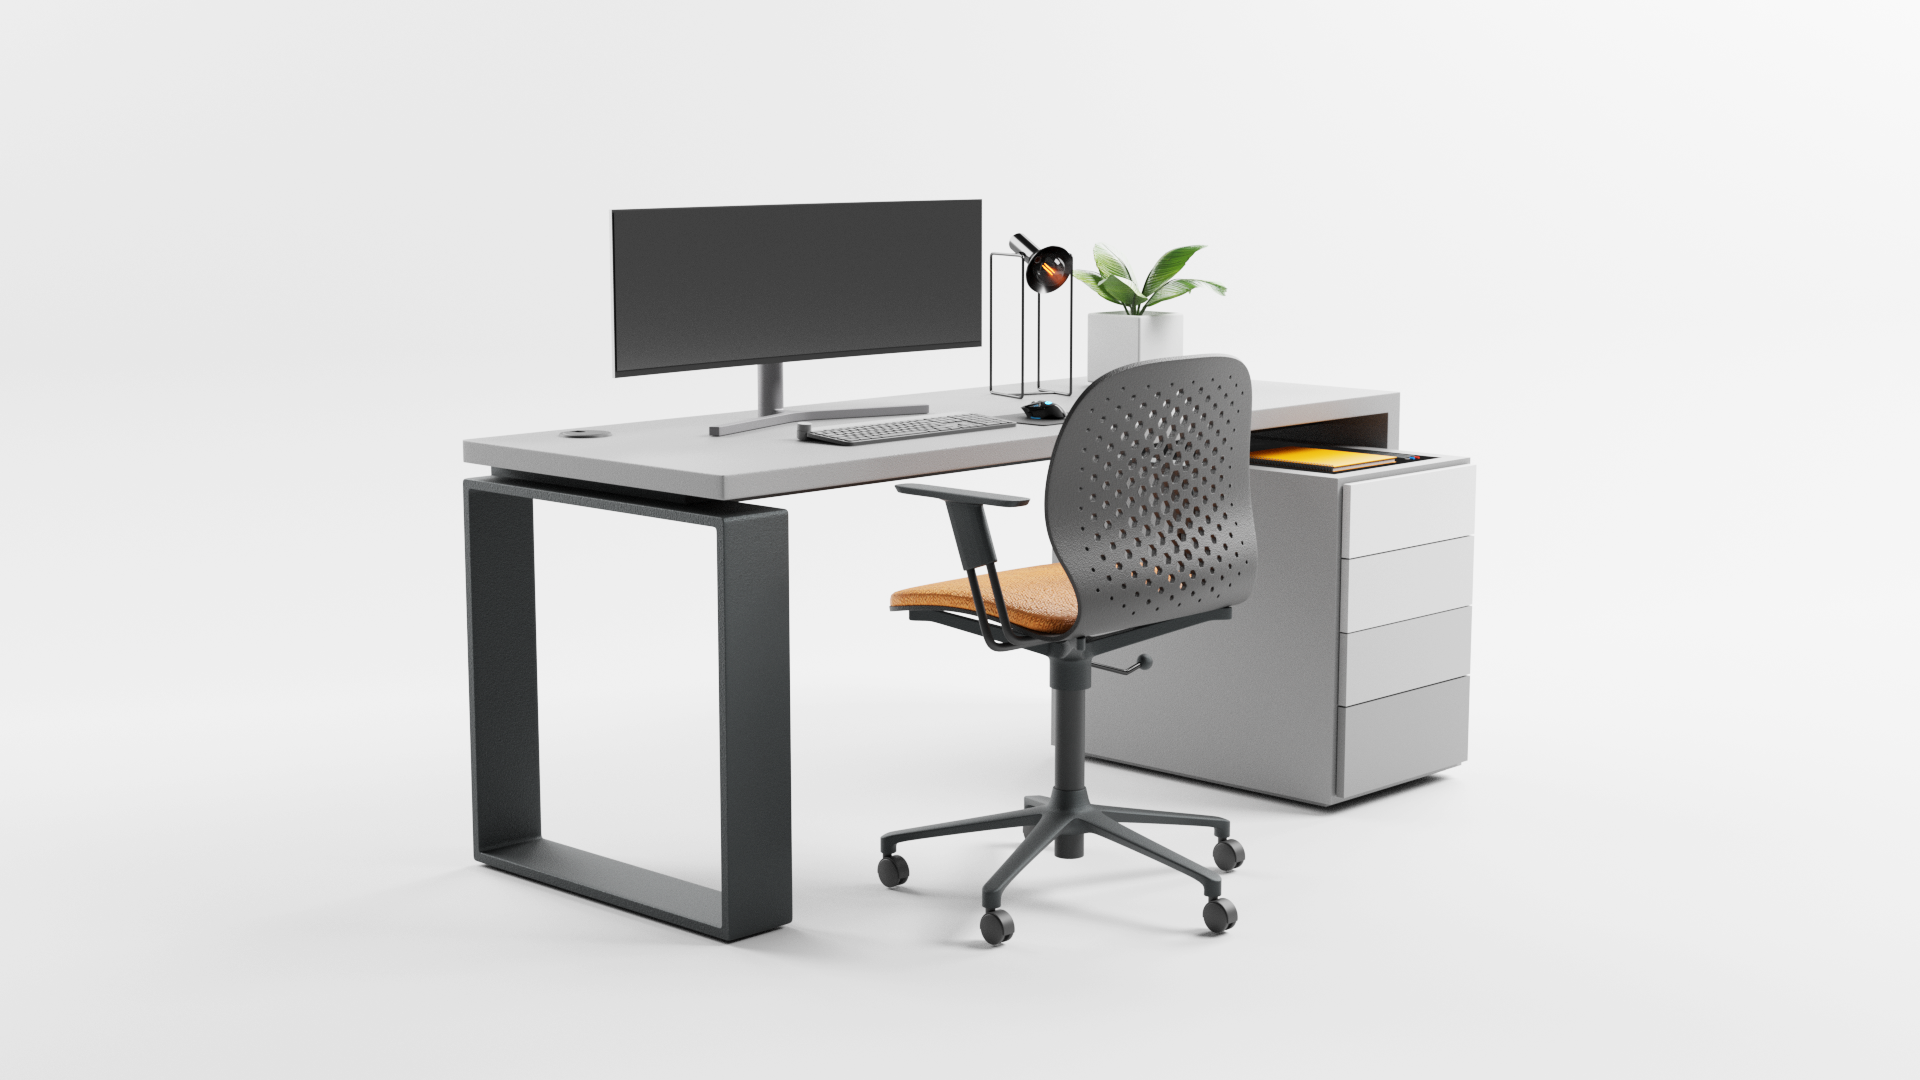 Office Furniture preview image 1